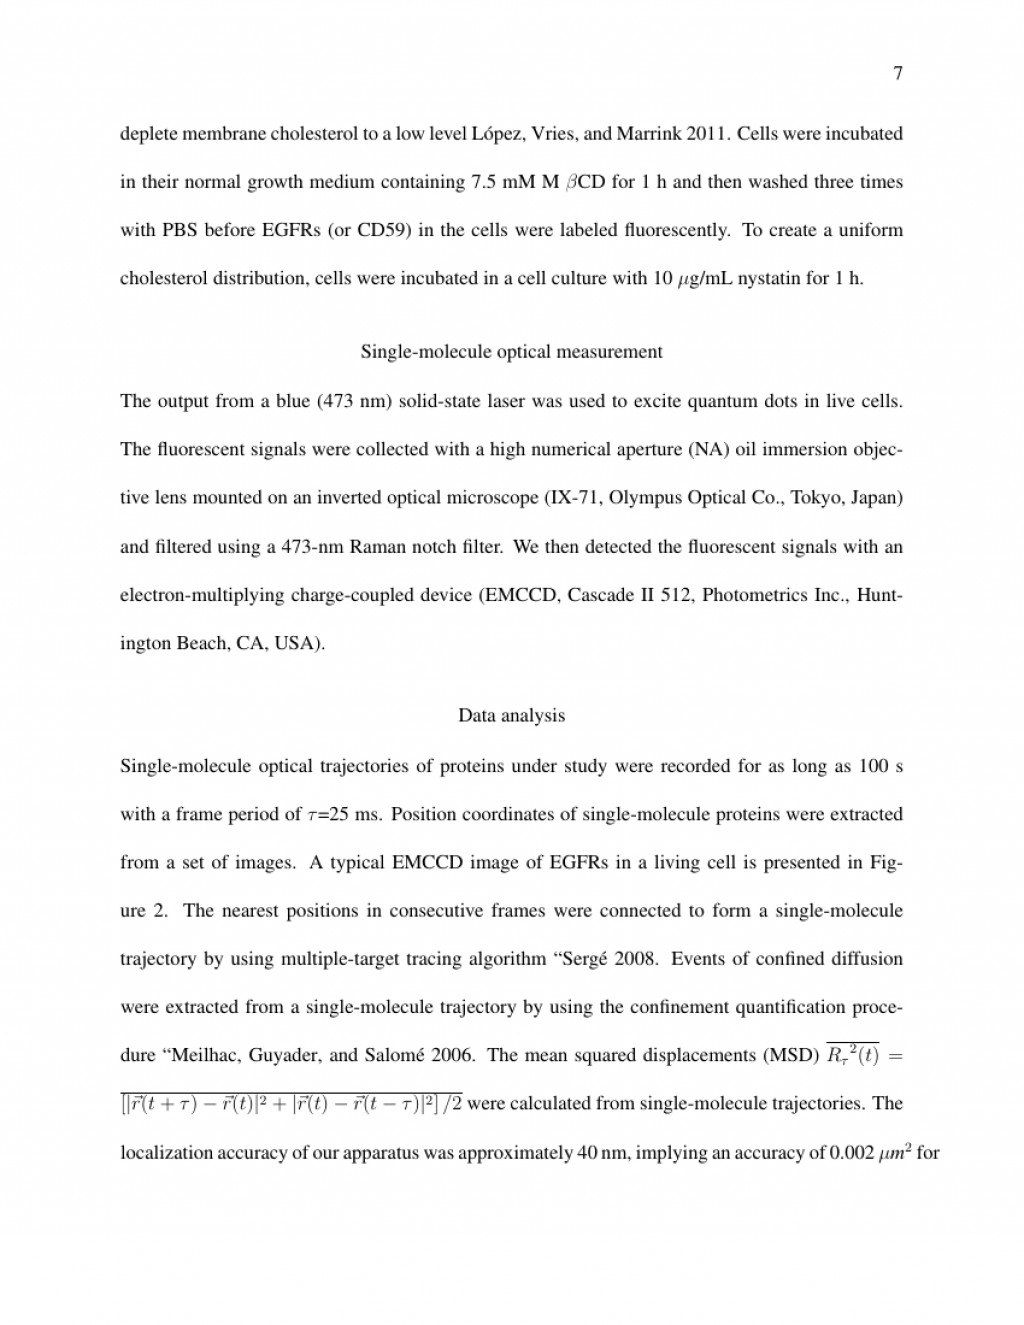 006 Article Research Paper Striking A Format The Imrad Writing Apa Large